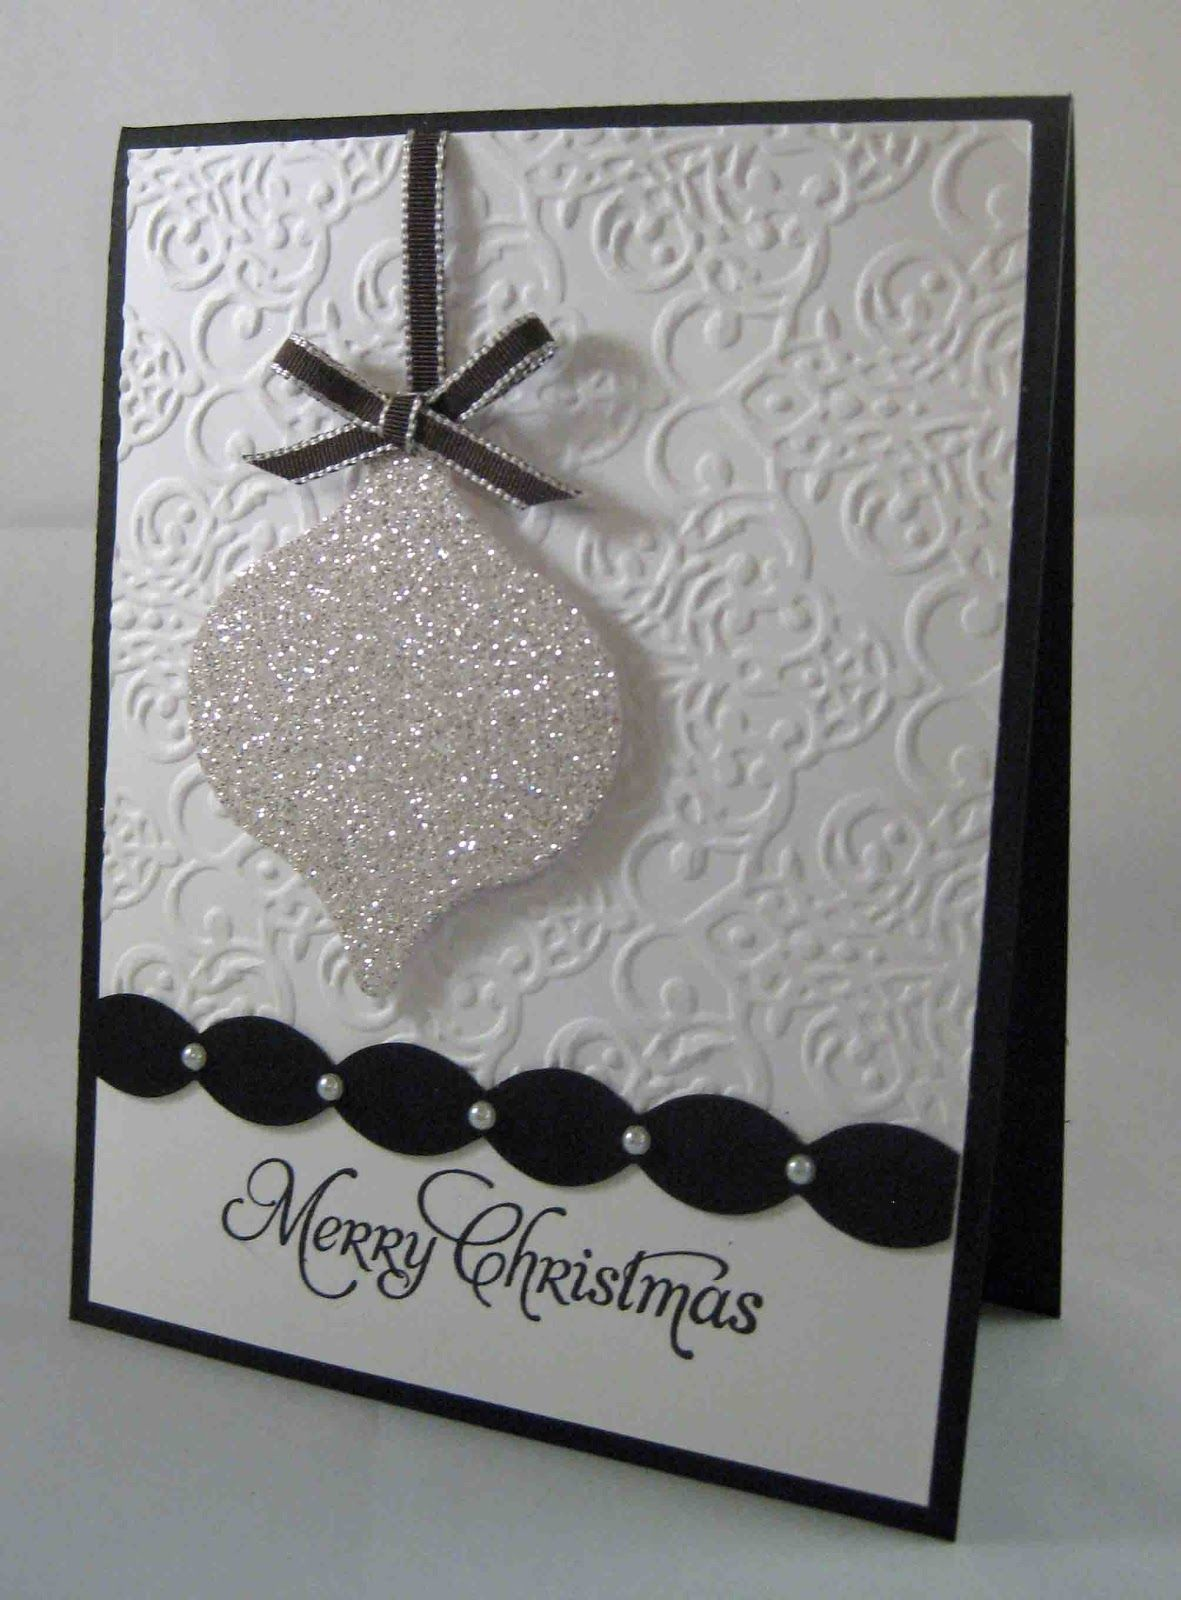 Stunning glitter ornament merry christmas cardth crocker cute christmas card white embossed base with glittery white ornament stamped greeting along bottom kristyandbryce Image collections